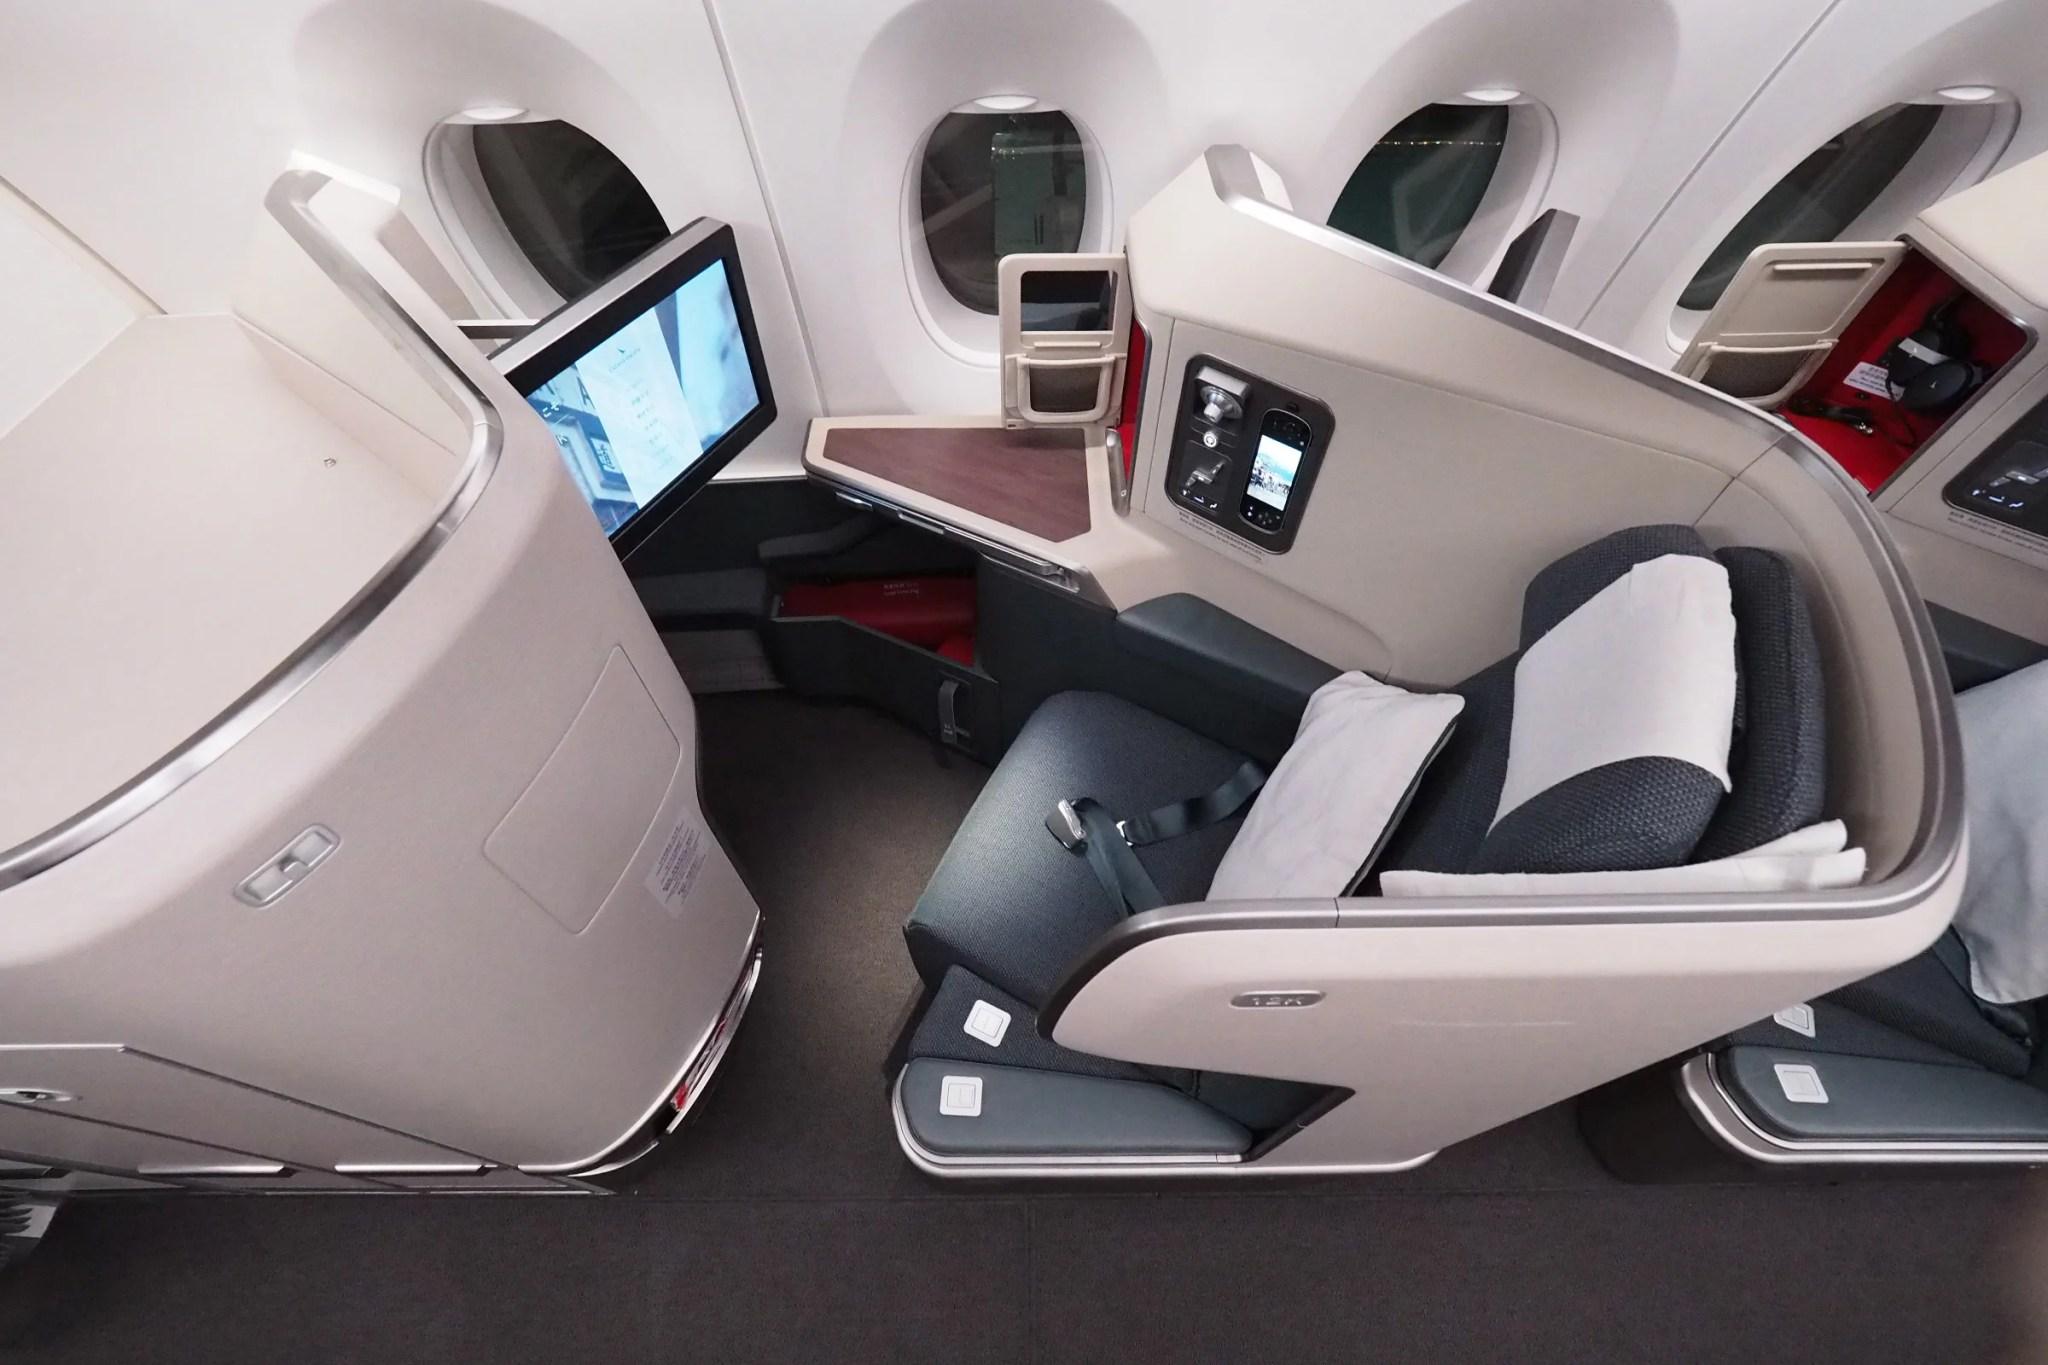 Score Incredible Awards For Cheap By Buying Alaska Miles Cash Pb 20000 One Way To Asia In Cathay Pacifics Top Notch Business Class 50000 Cost 1123 With 1300 Left Over Or 985 At The Maximized 197 Cents